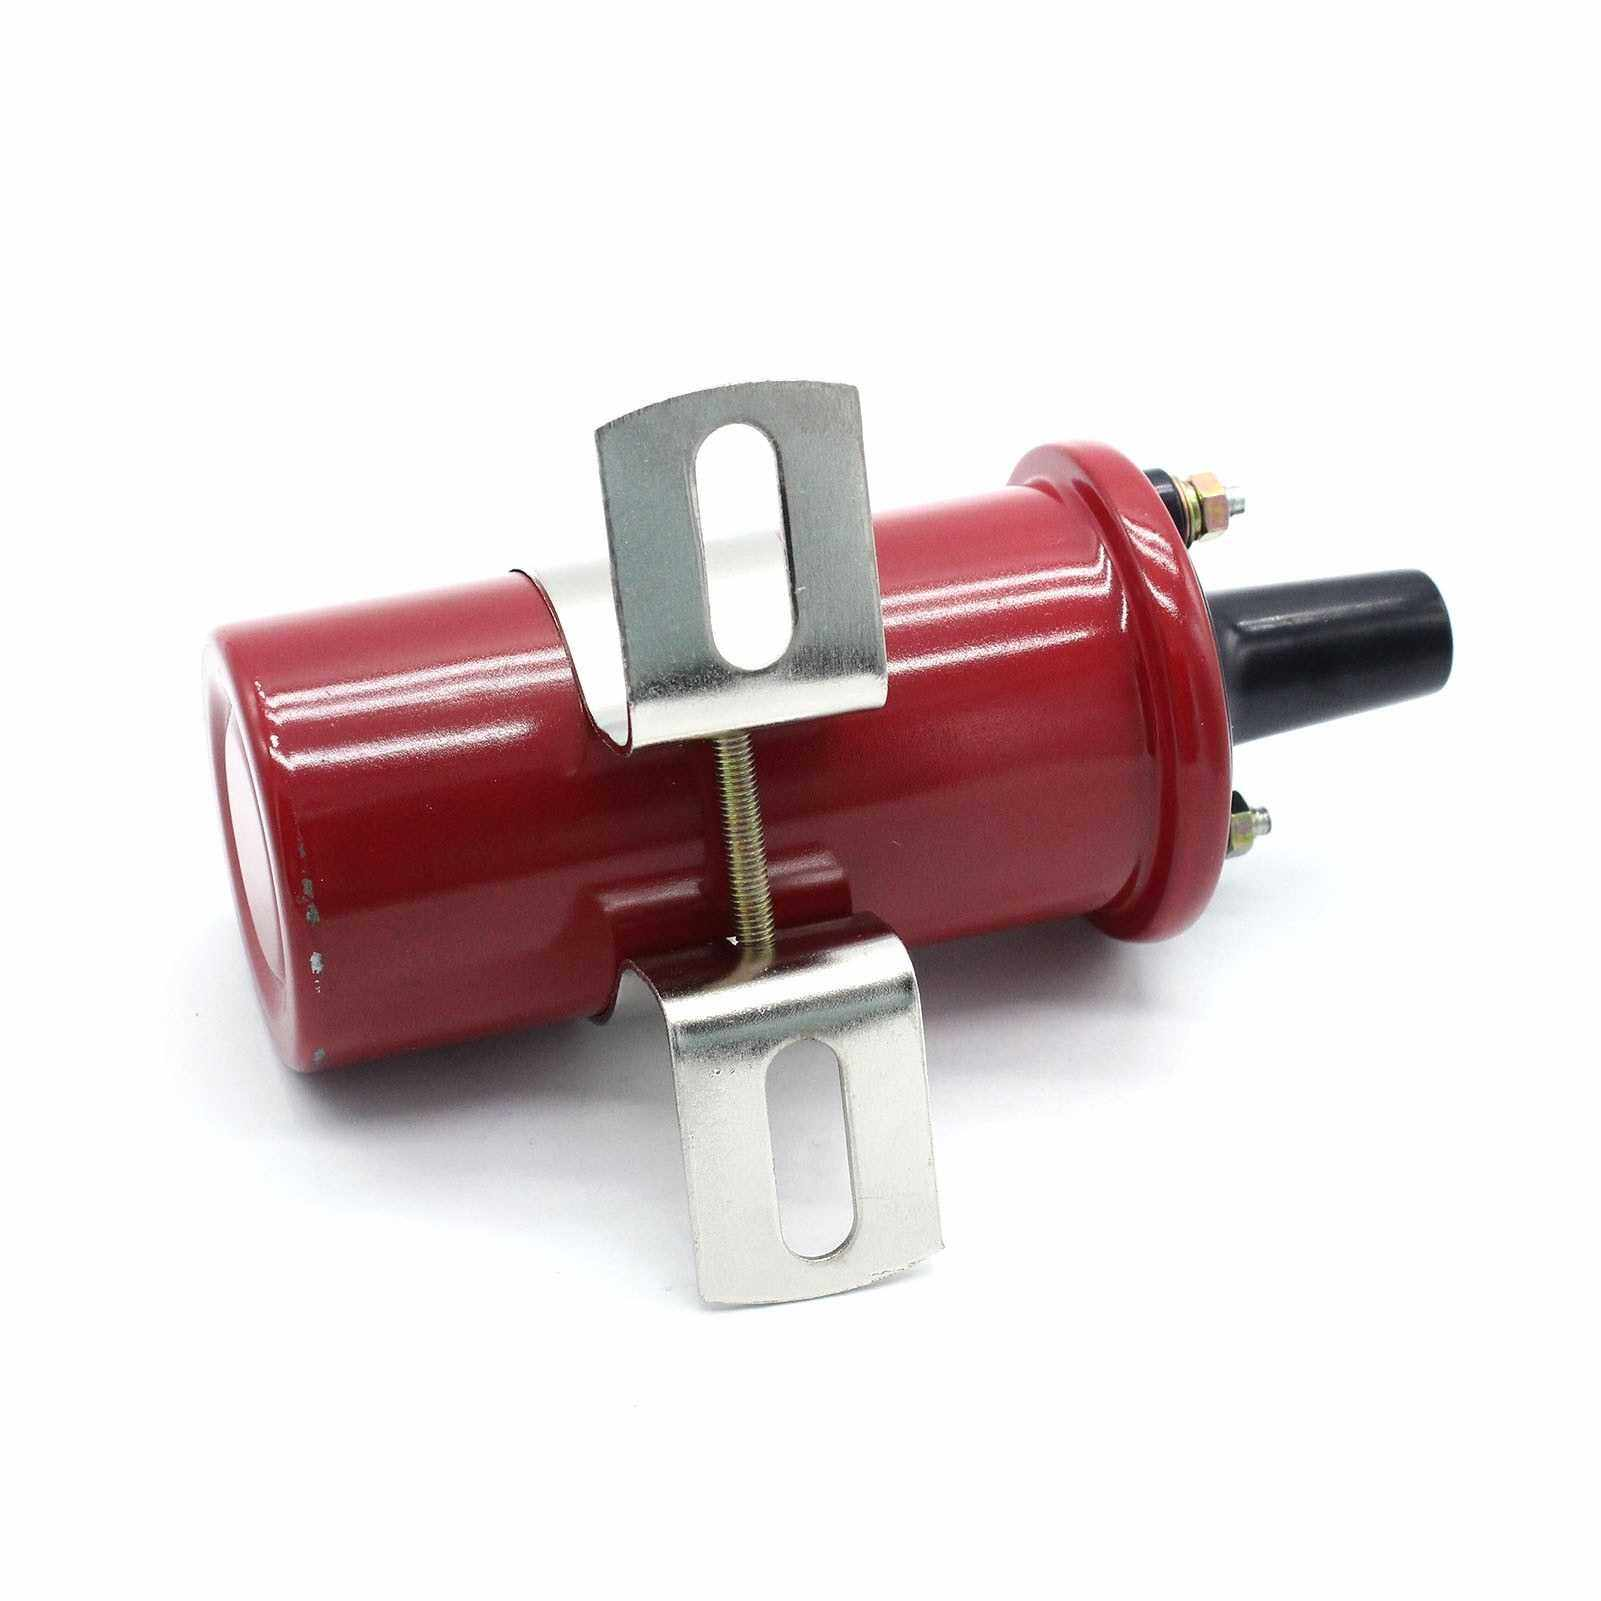 8202 Red 12V Electronic Ignition Coil 45,000 Volts (Red)